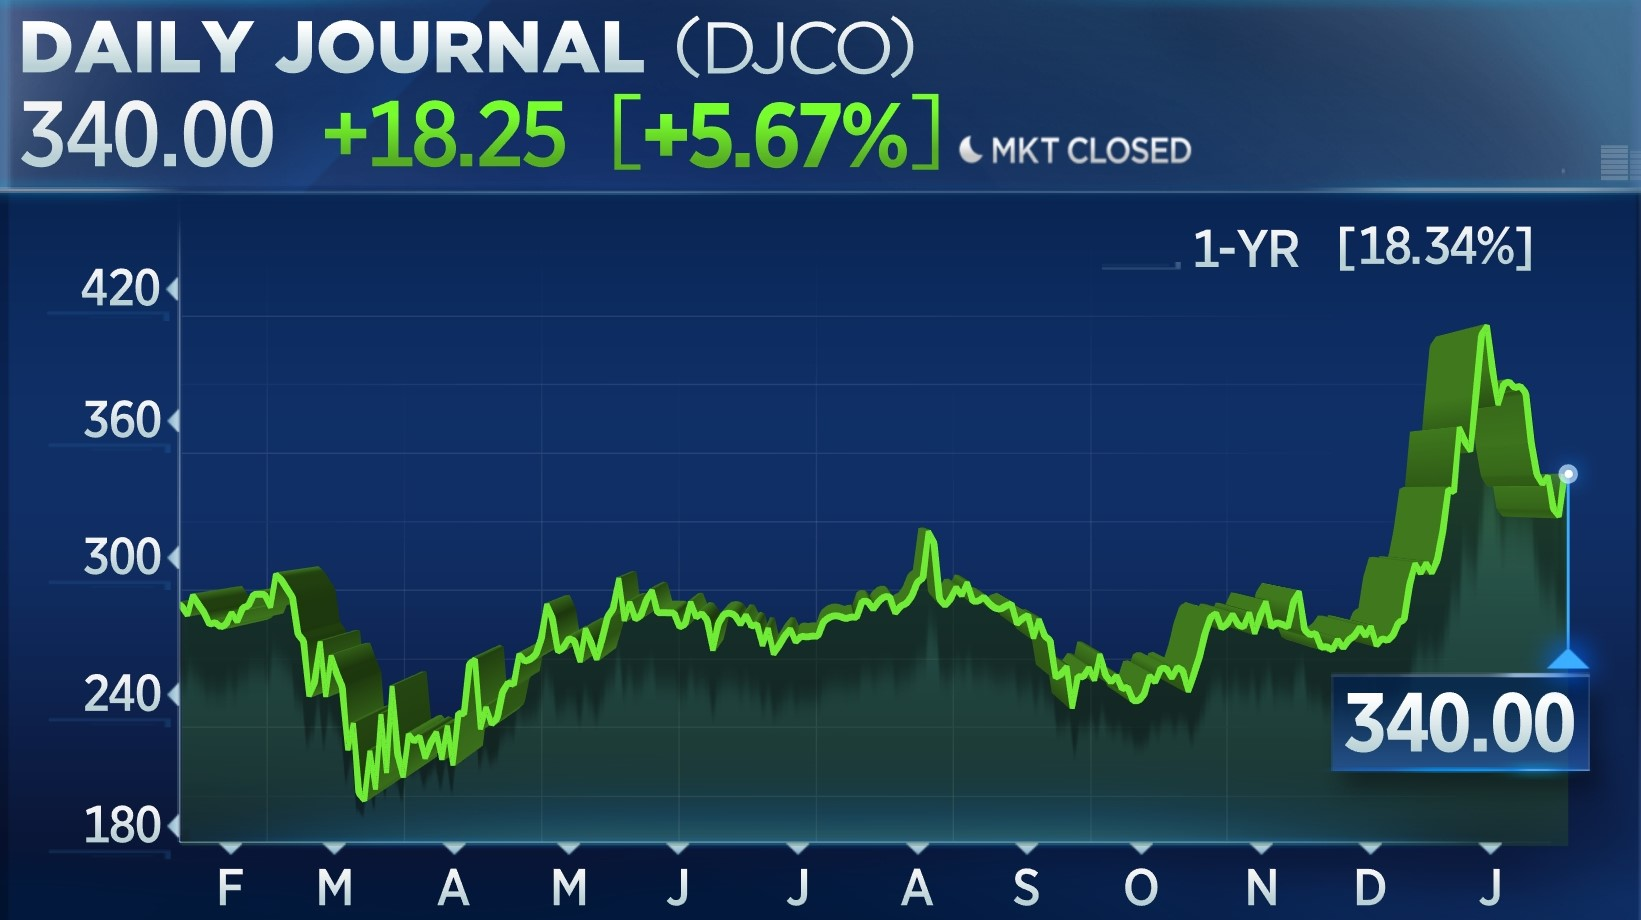 Daily Journal DJCO One Year Chart